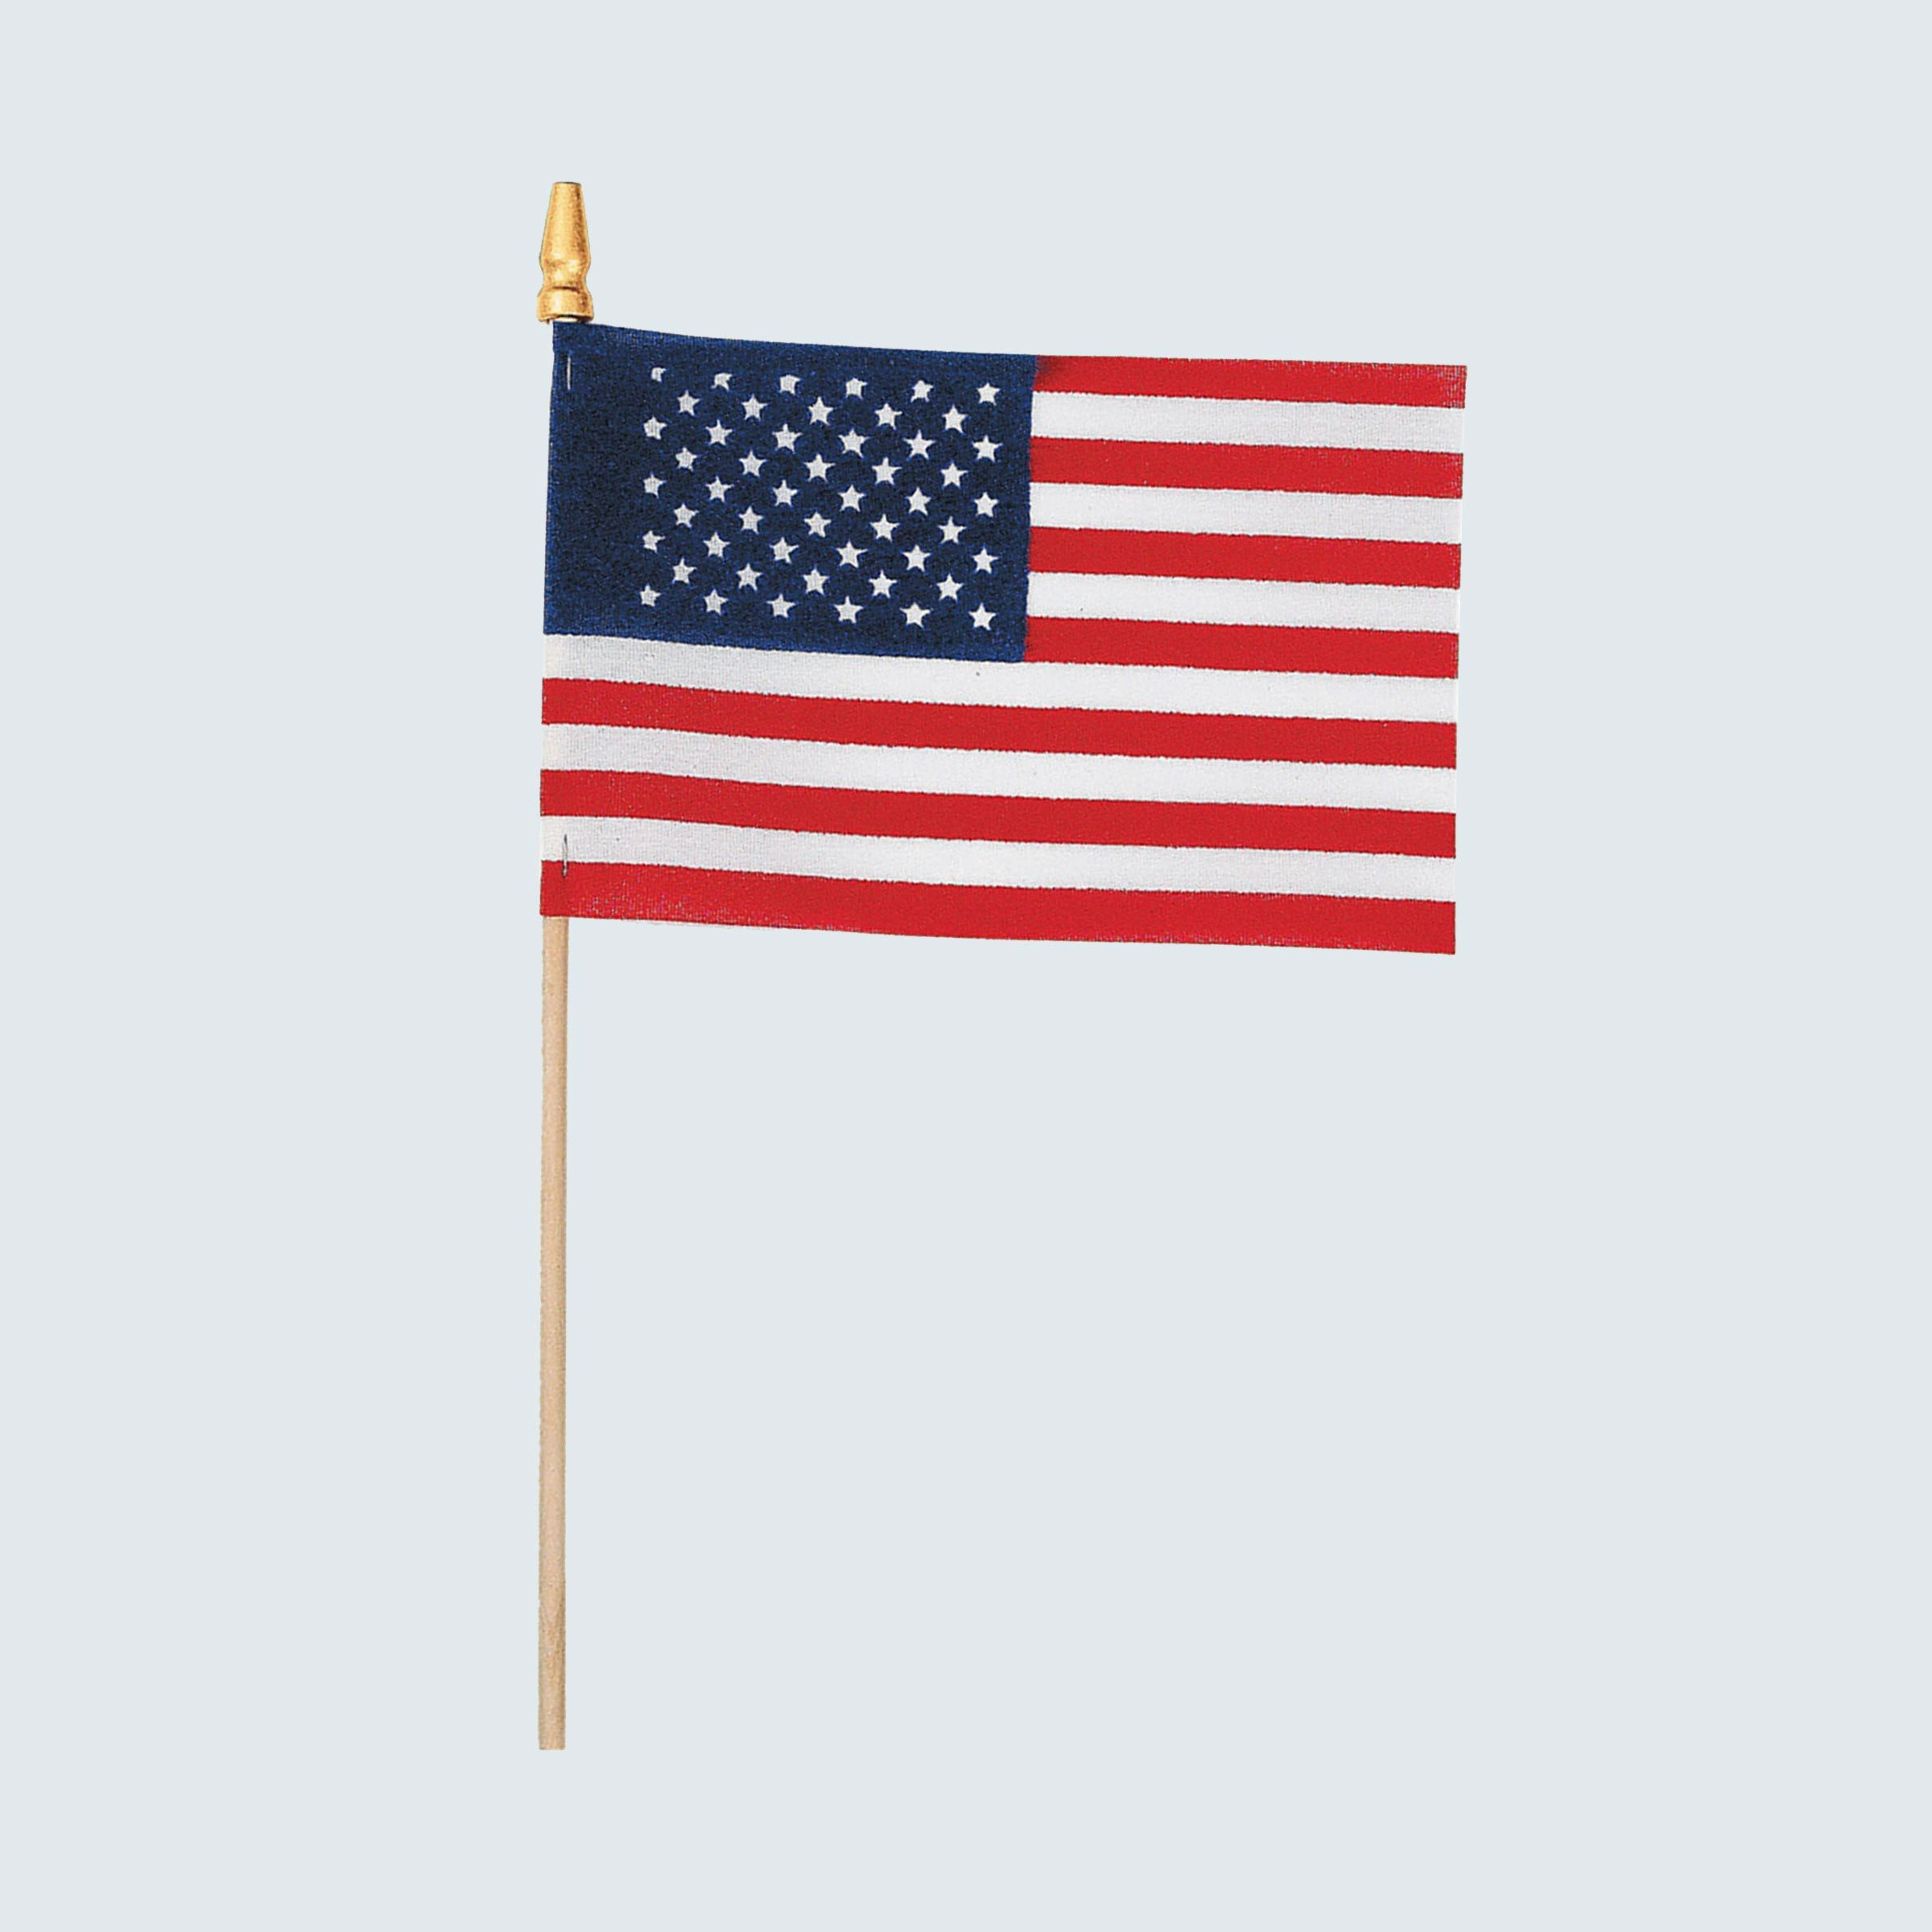 Oriental Trading Small Cloth American Flags